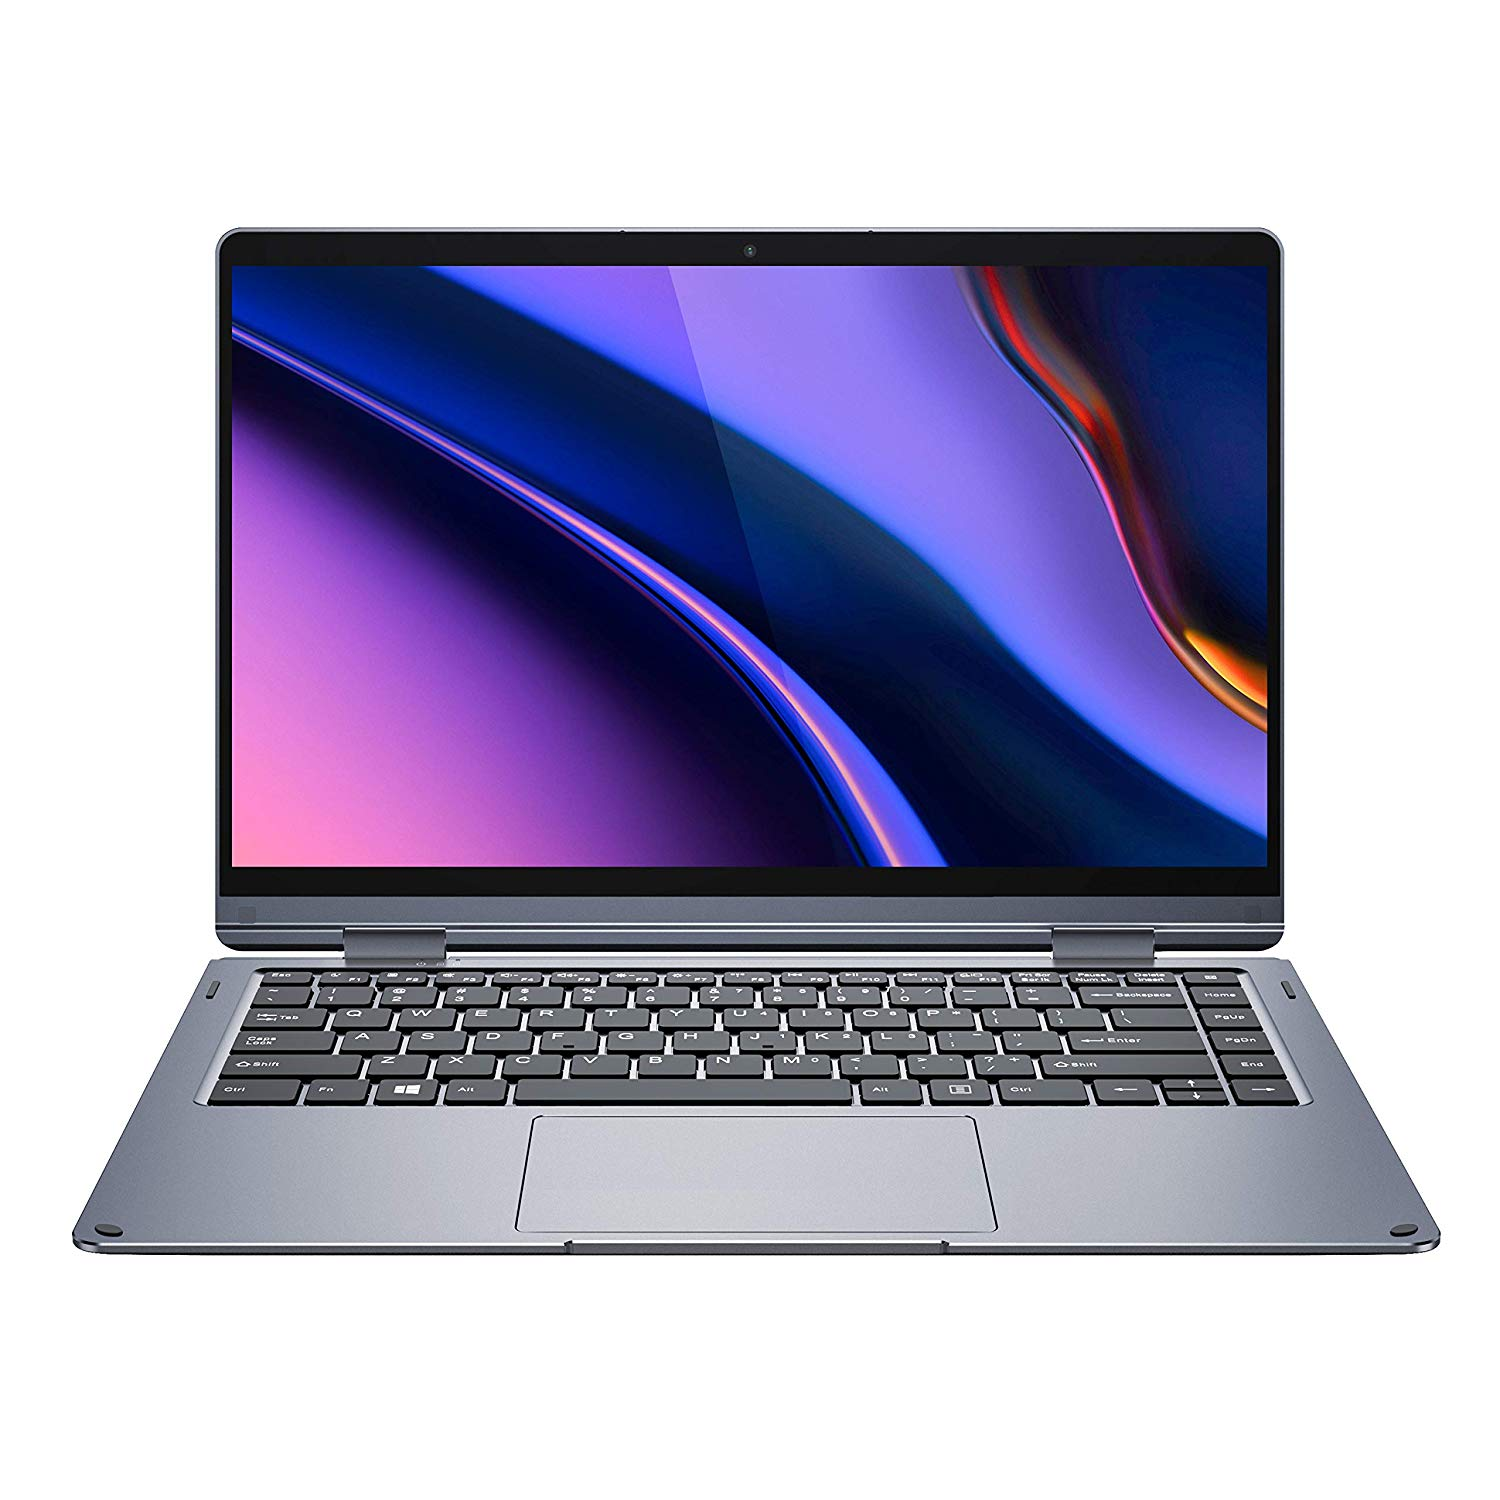 2019 XIDU PhilBook Max Touchscreen Laptops